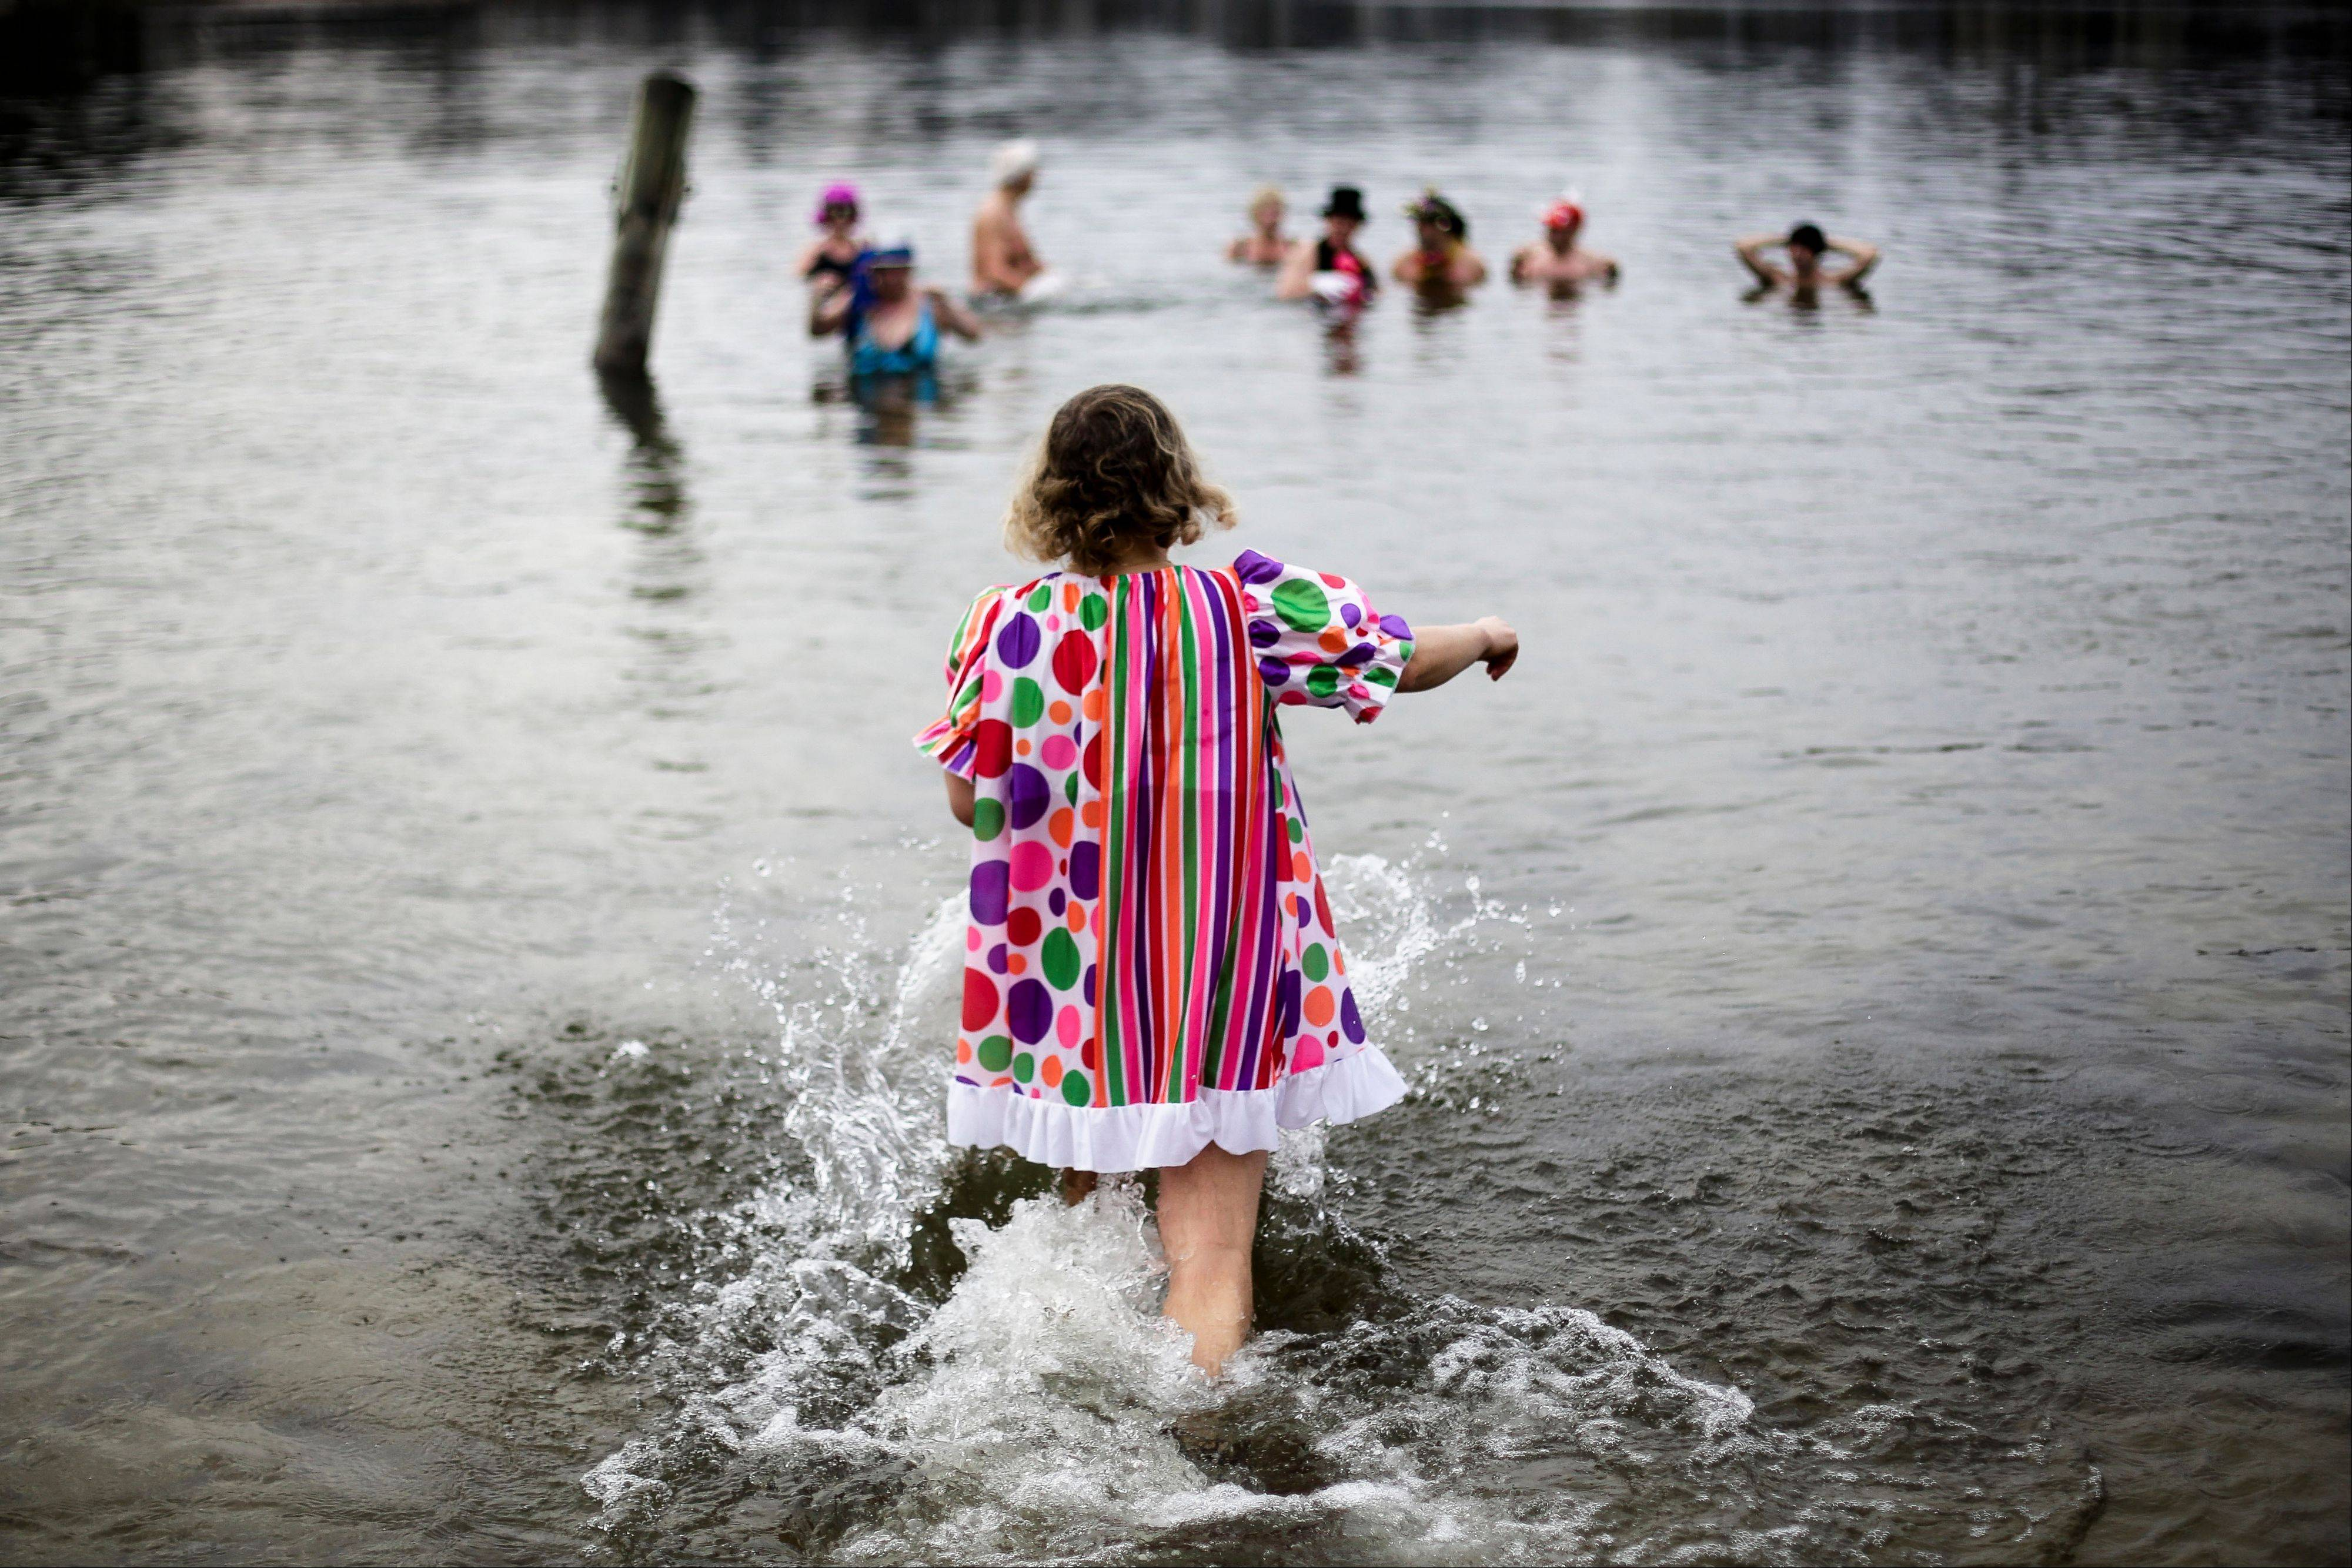 A woman with a colororful dress walks into the water as she attends the annual New Year's swimming of the winter swimming club Berliner Seehunde (Berlin Seals) at Oranke Lake in Berlin, Wednesday, Jan. 1, 2014.